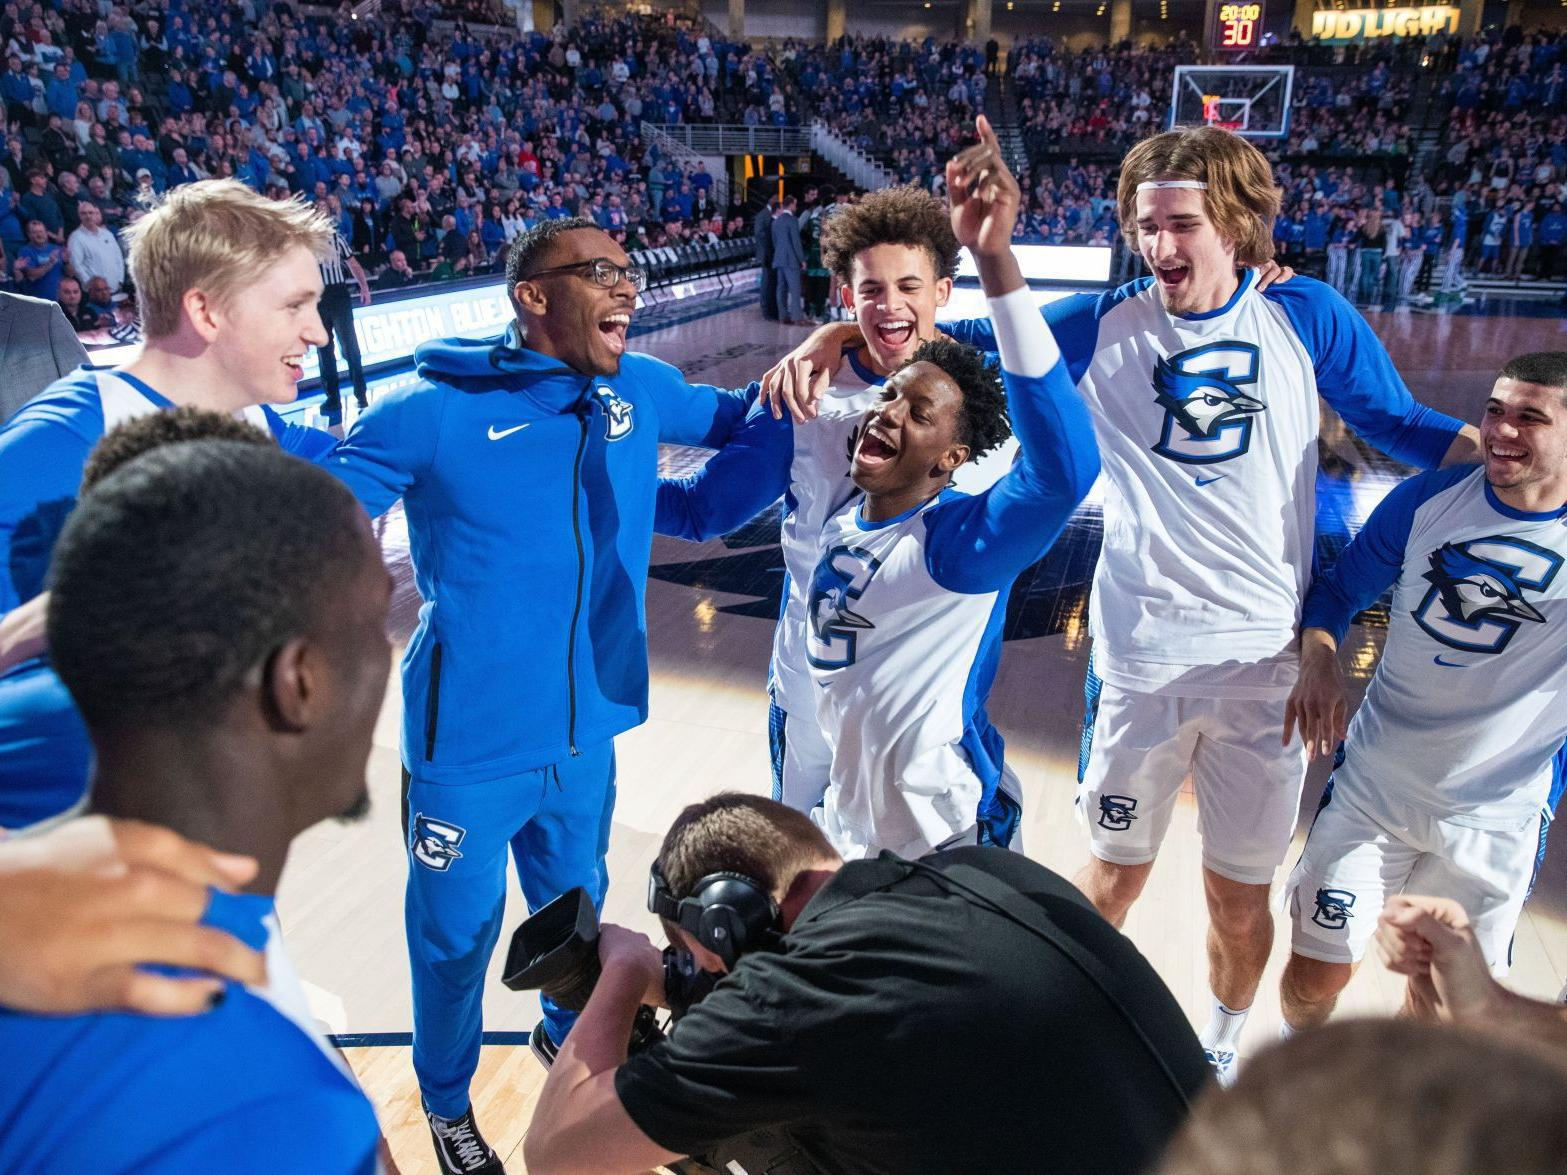 Oklahoma showdown could have an impact in March, and Jays want to capitalize on opportunity